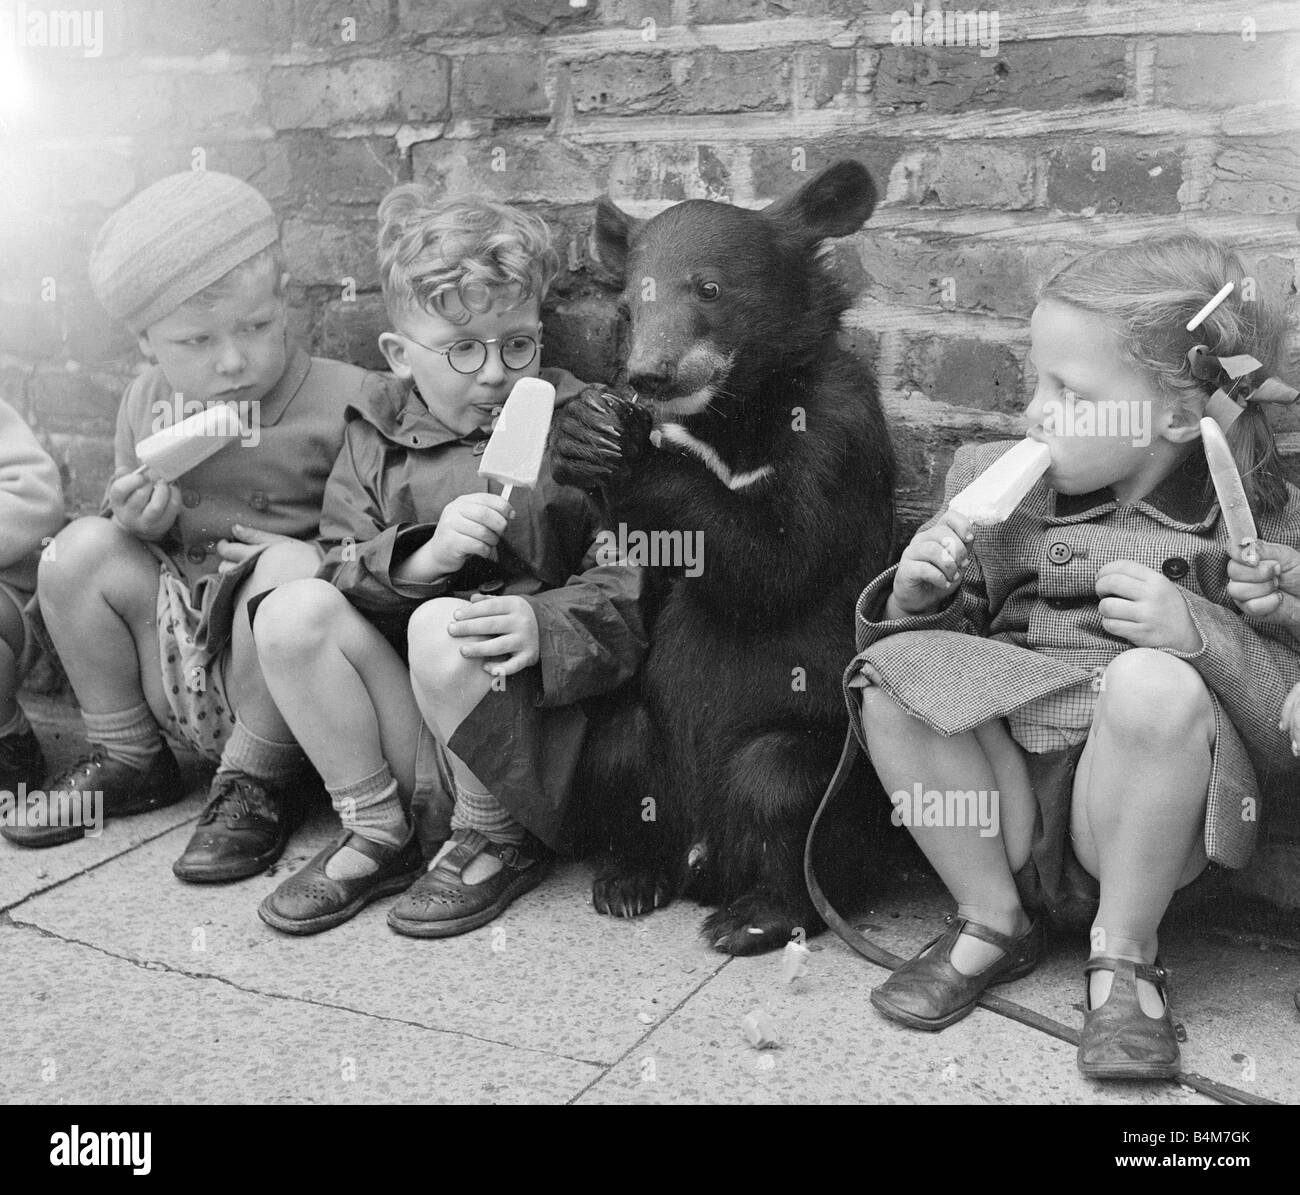 Biffo a Himalayan mountain bear seen here enjoy a ice lolly with the children July 1953 - Stock Image